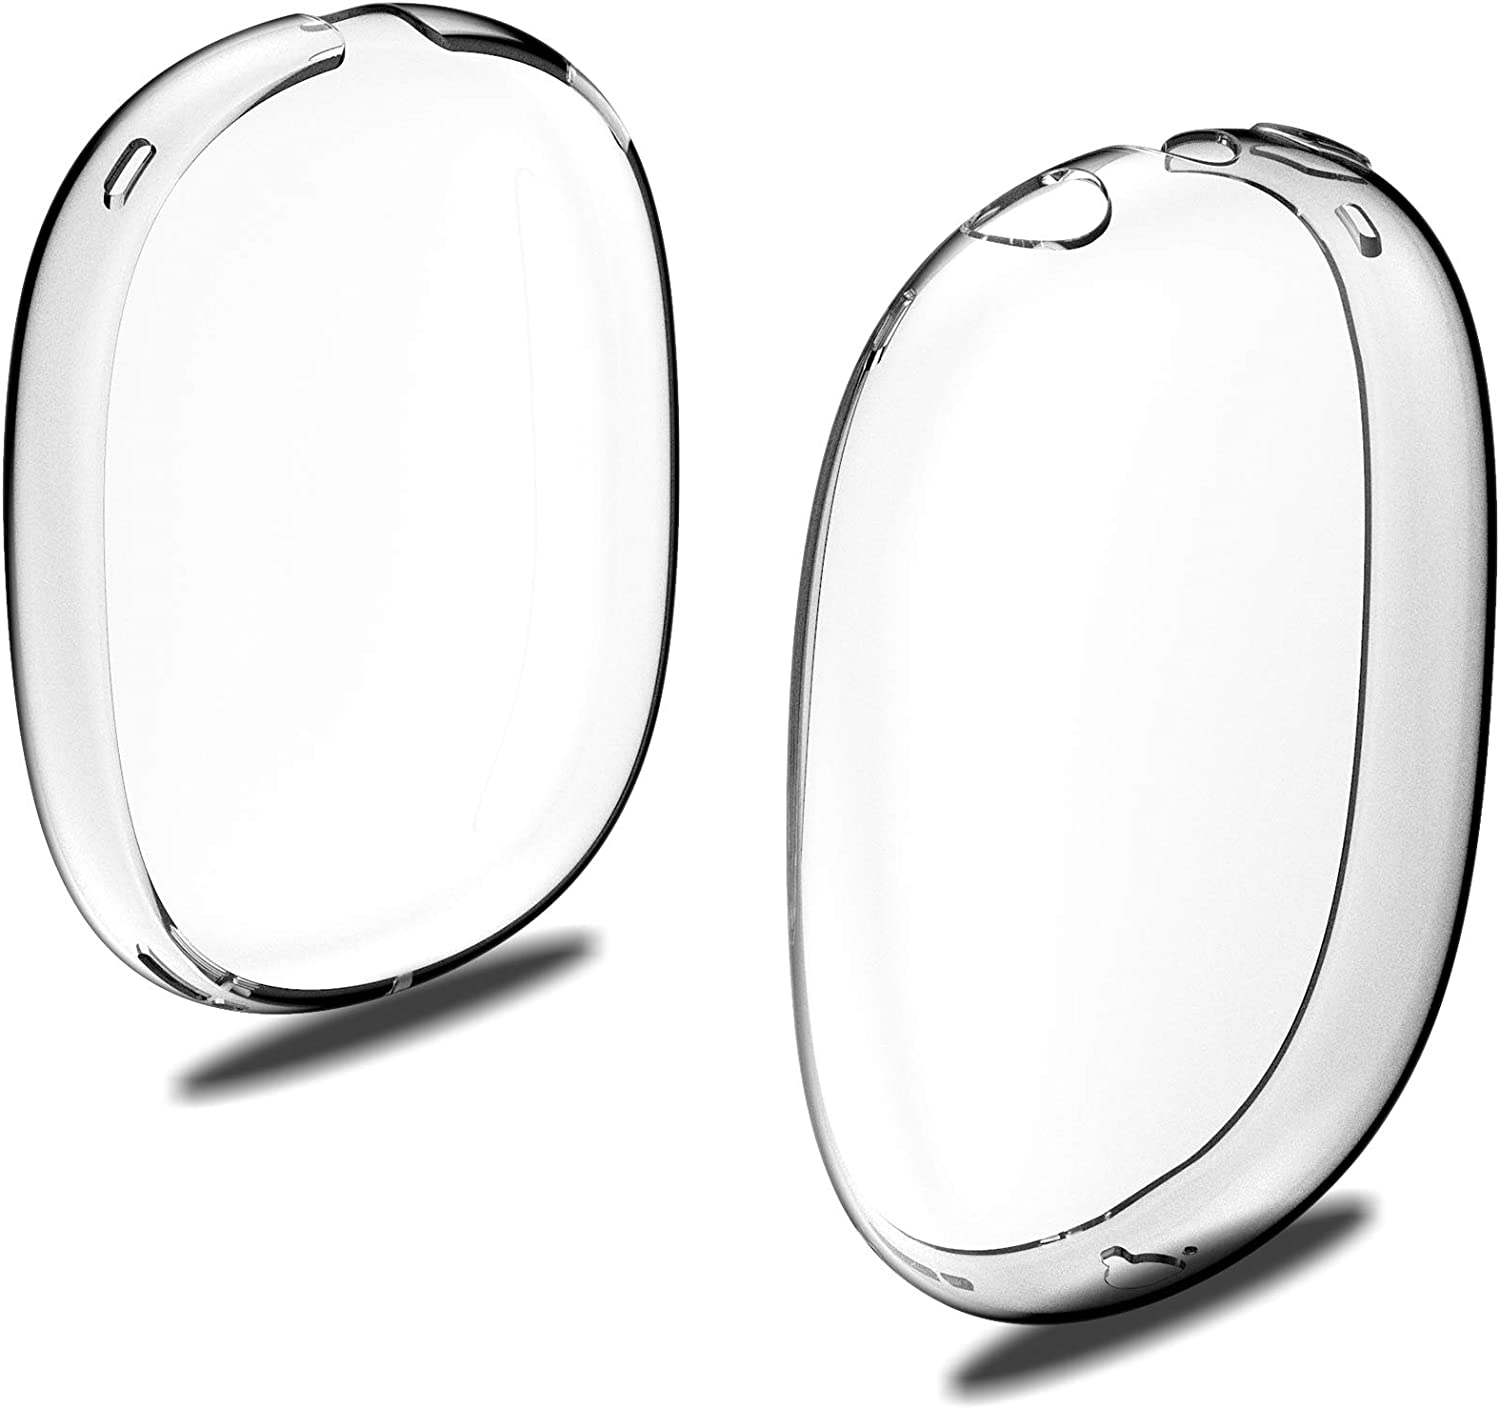 Clear Protector service Cover Compatible with 2021 model New Case Apple Max AirPods